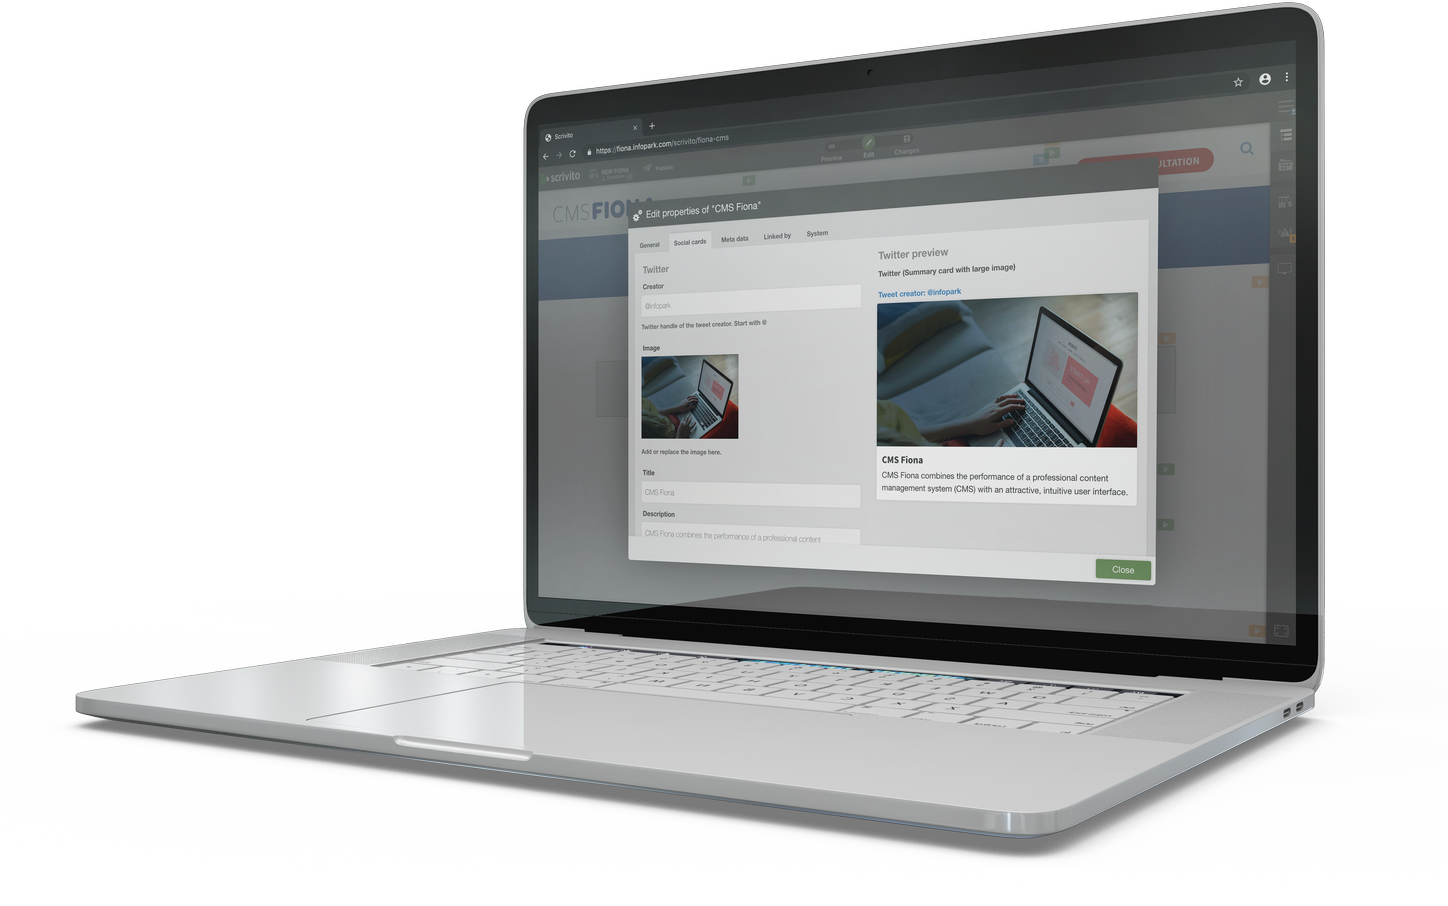 Laptop showing enterprise CMS functionality and features